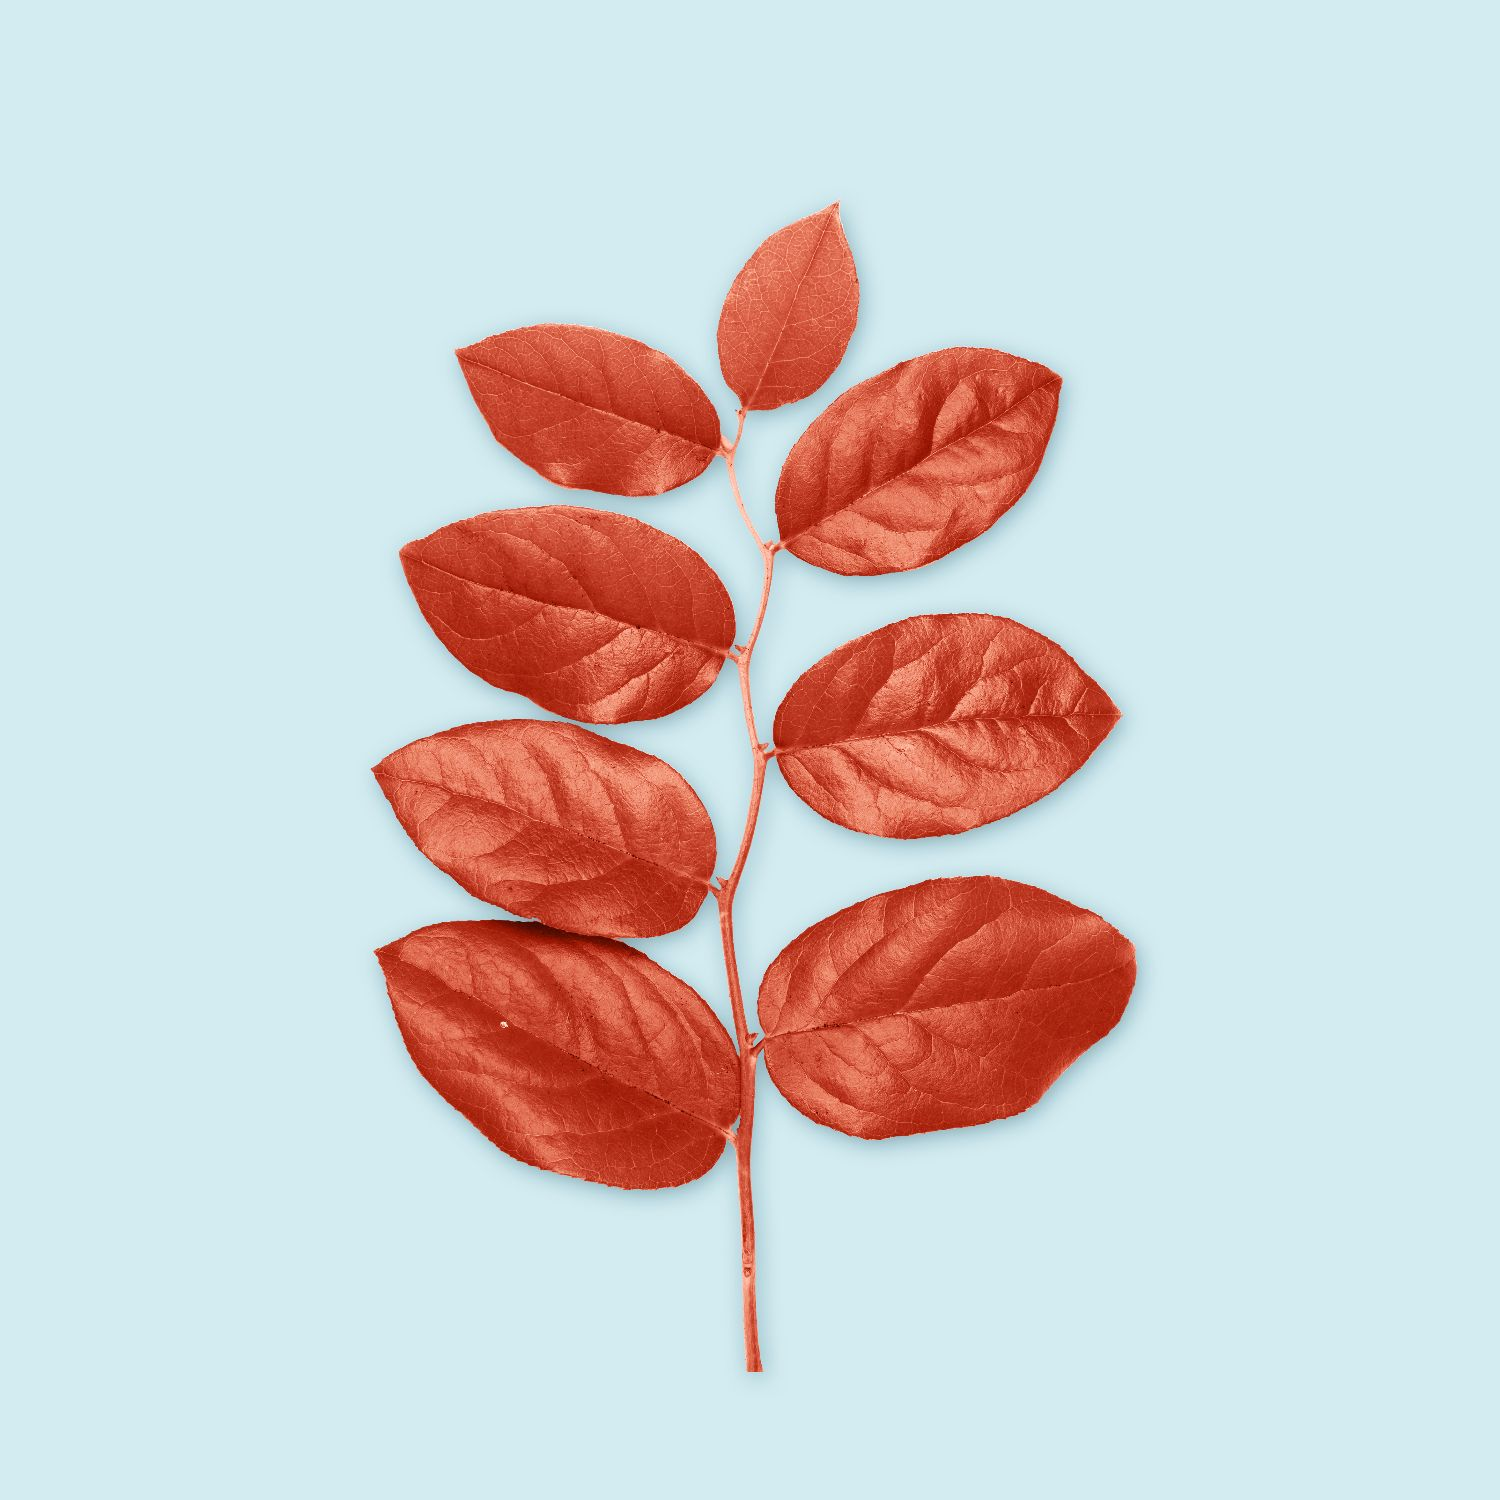 https://skillown.com/portfolio/well-designed-leaf/